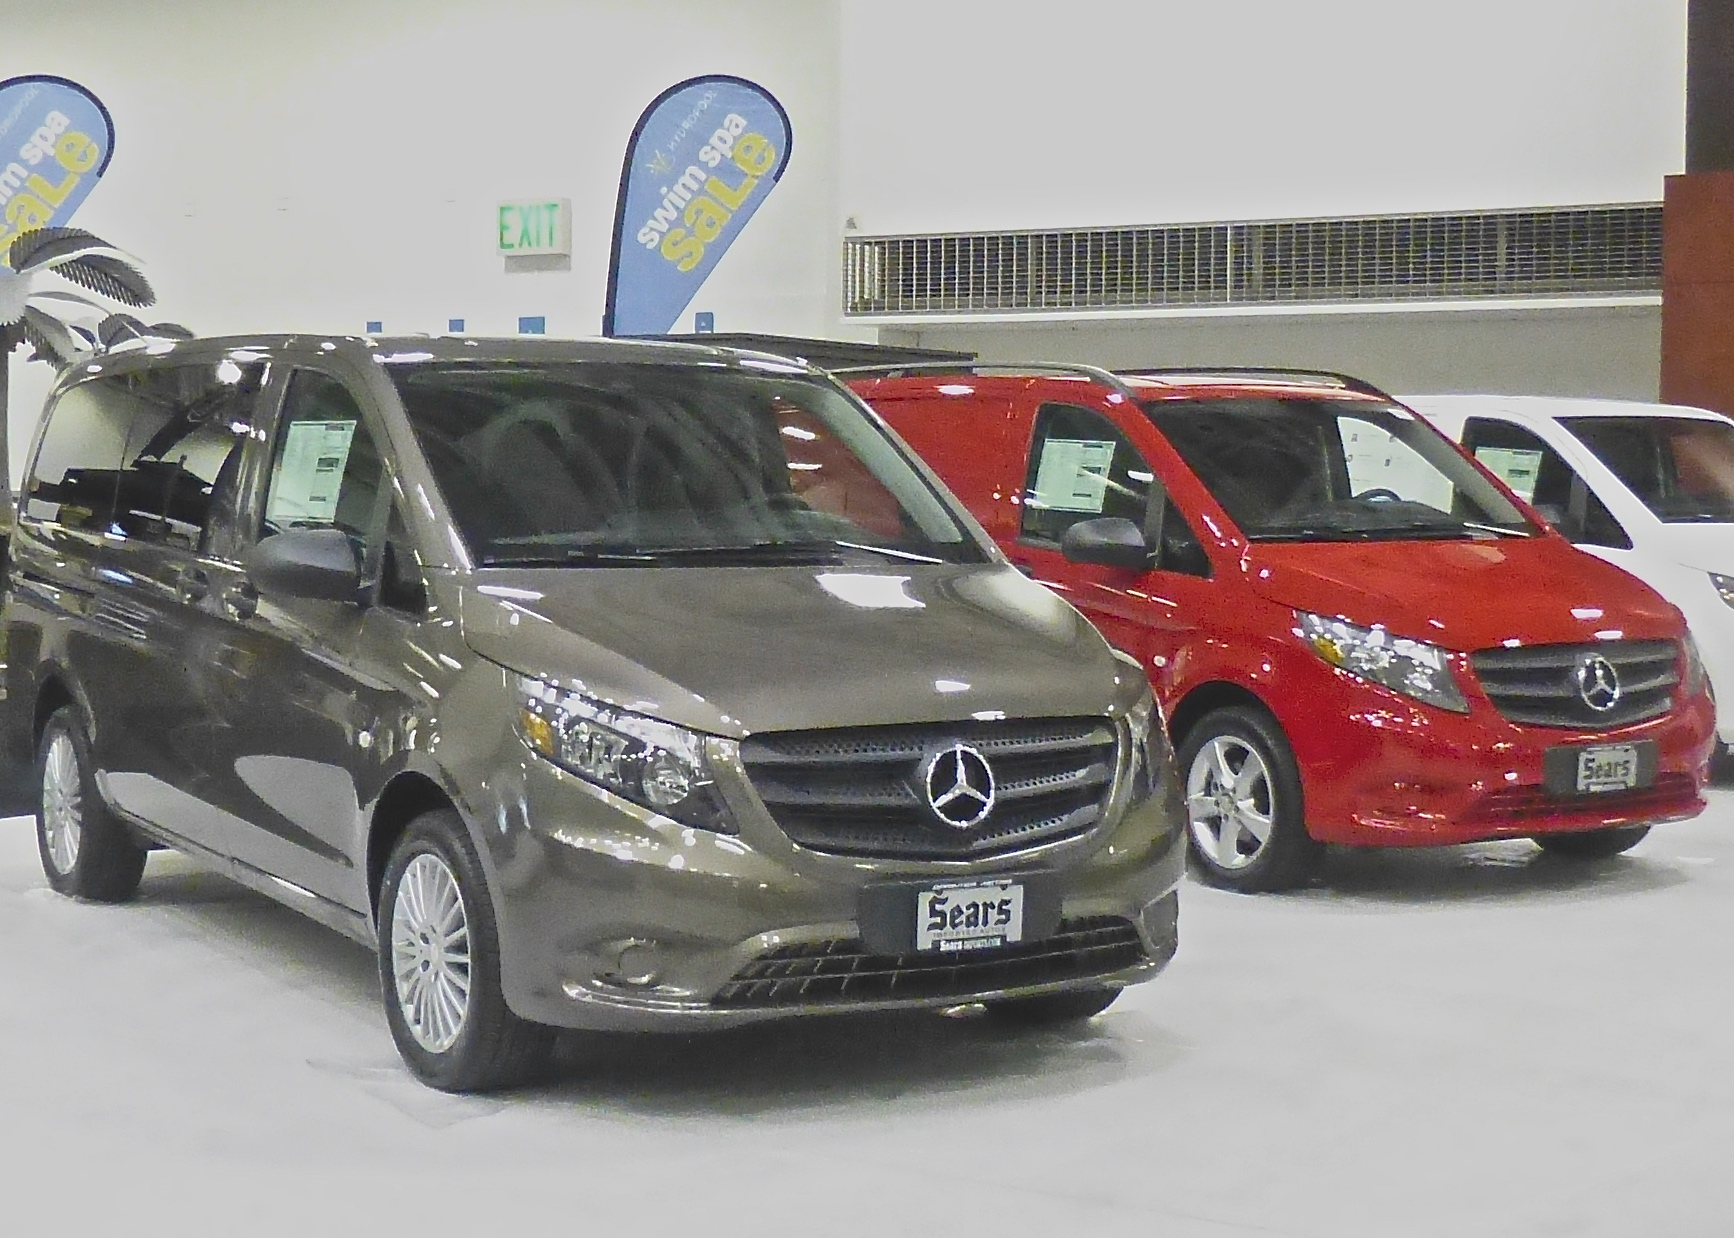 Mercedes Metdris vans offer reasonable size for cargo or riders.